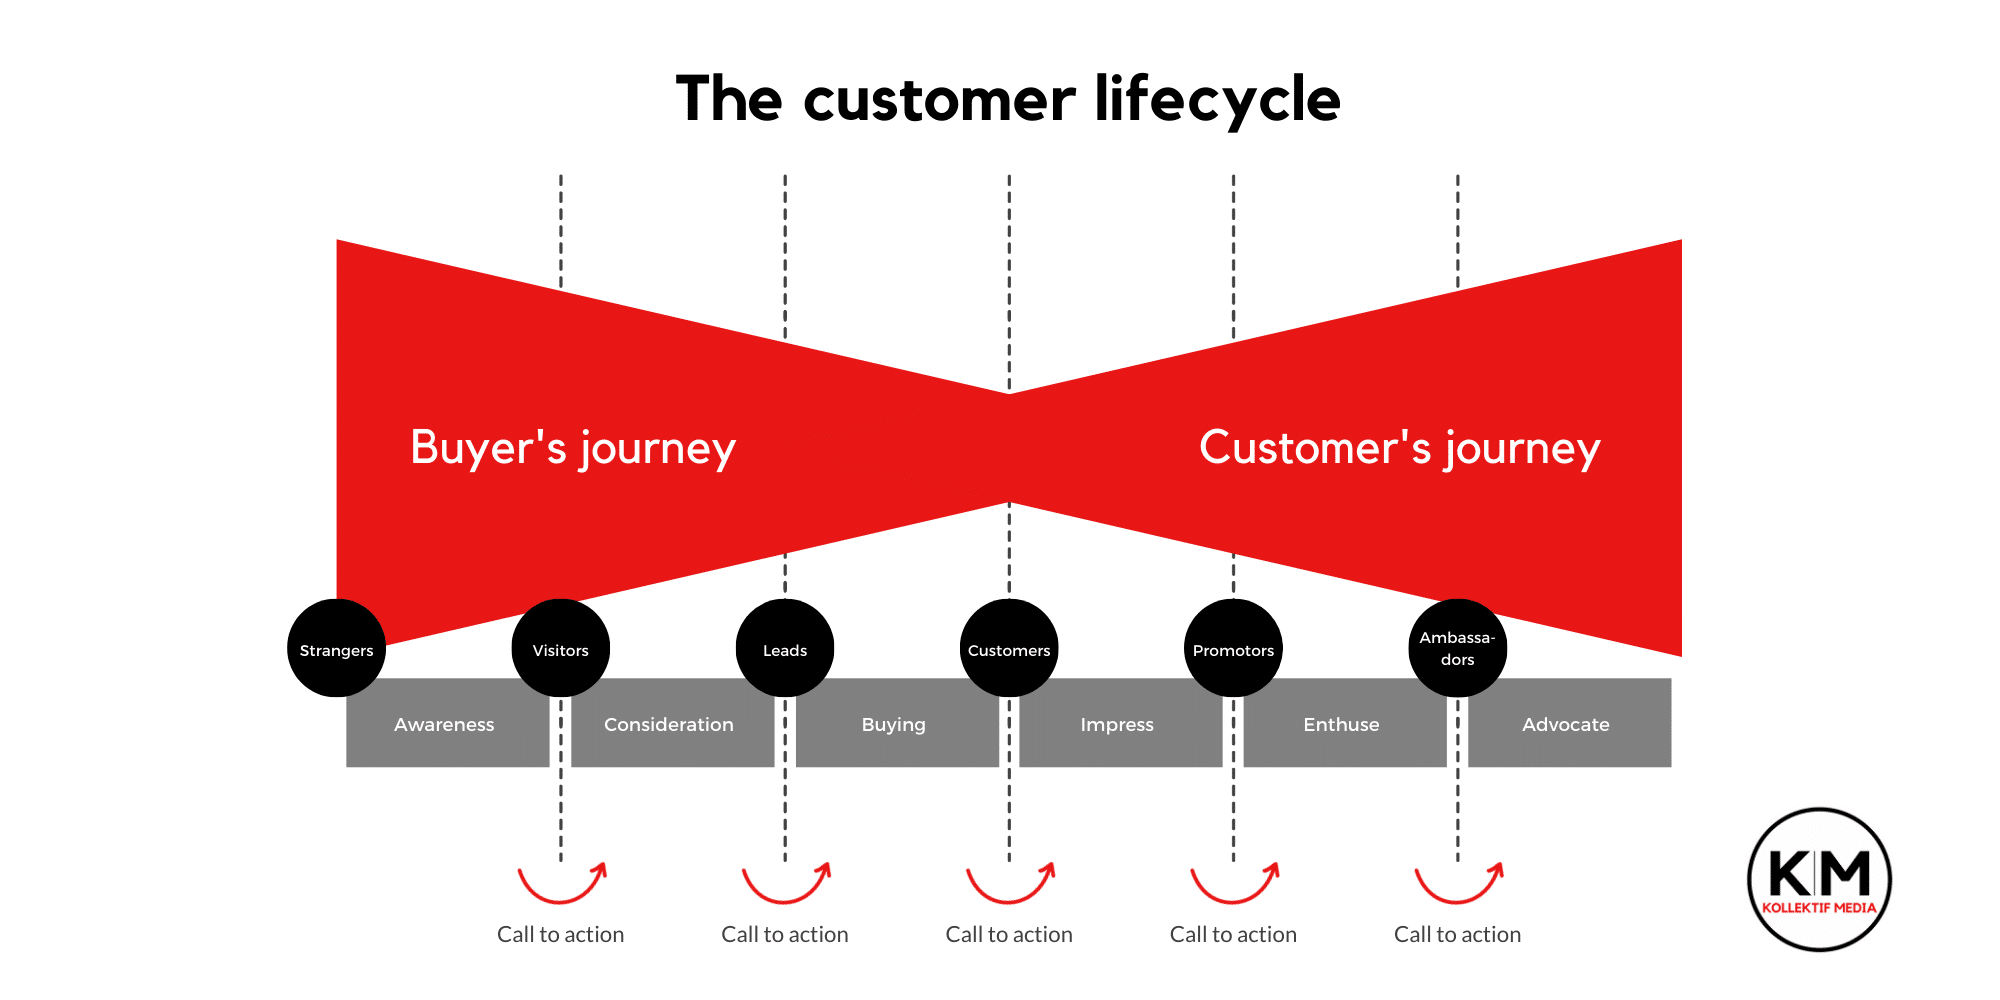 Customer lifecycle Kollektif Media